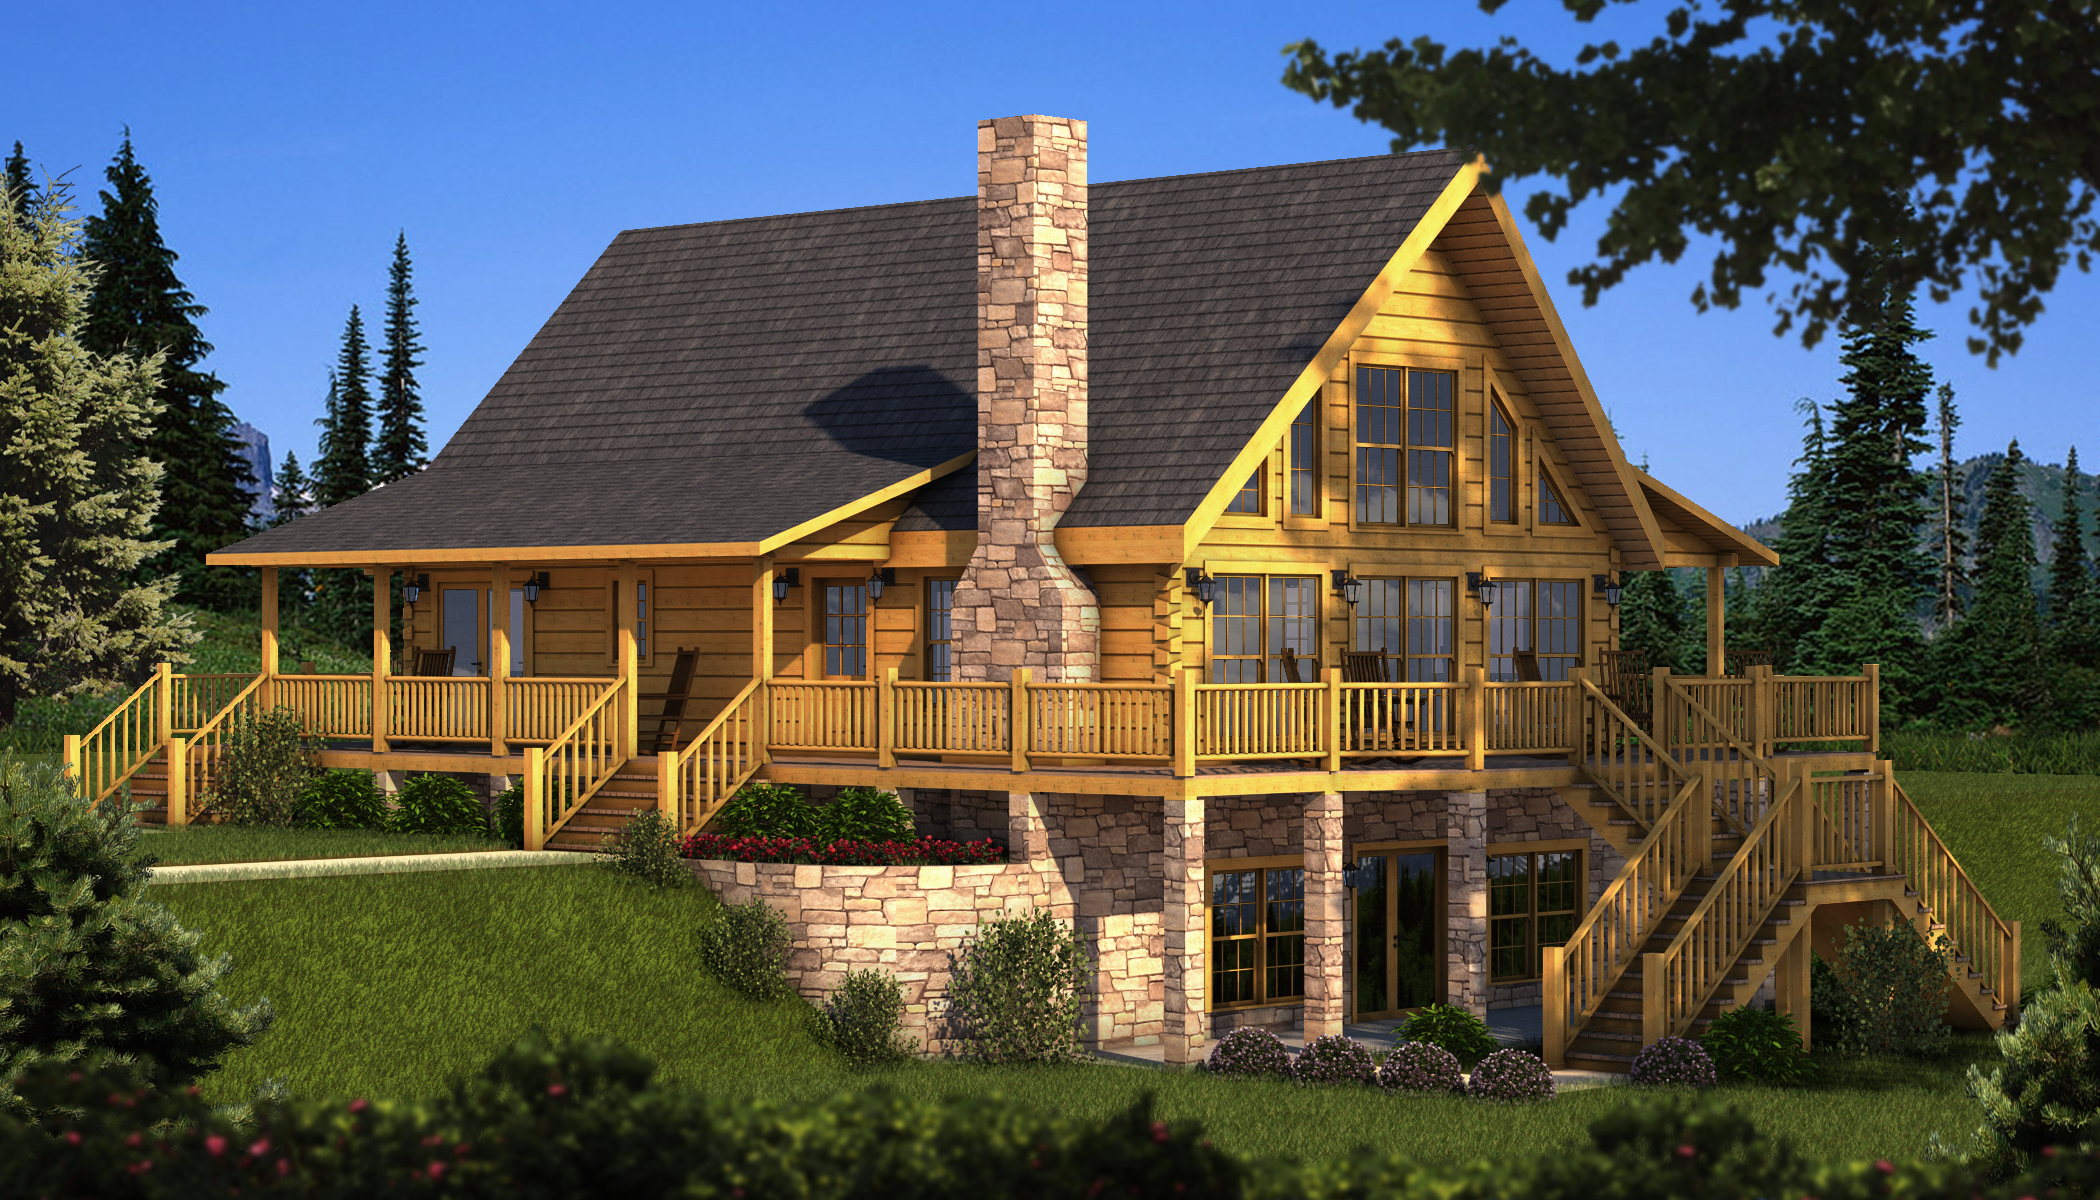 Berkshire plans information southland log homes for Log house plans with photos